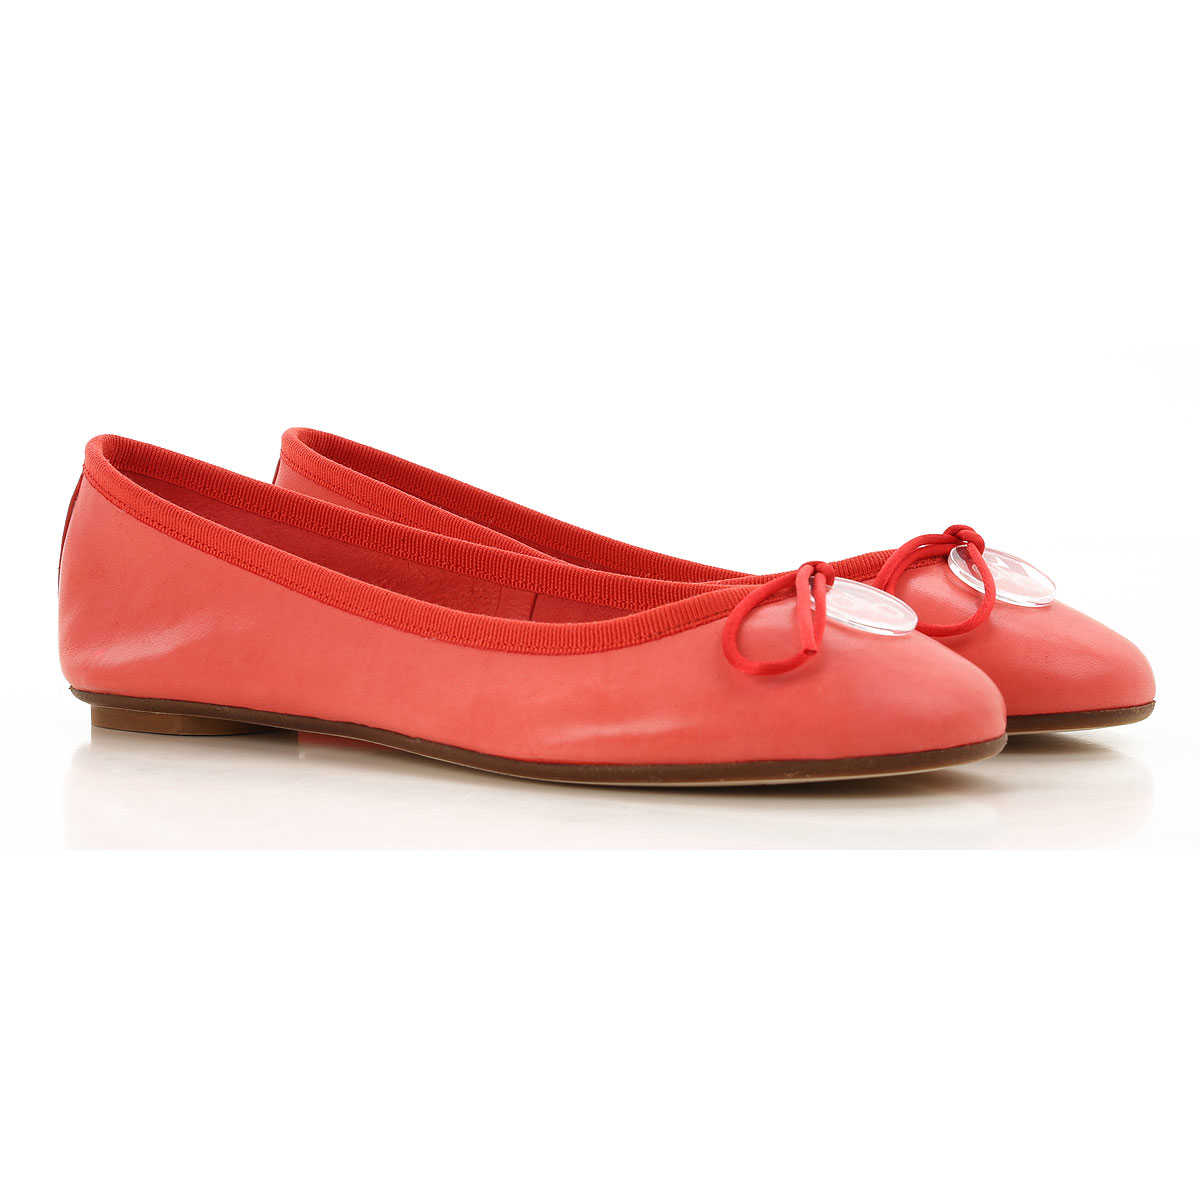 Anna Baiguera Ballet Flats Ballerina Shoes for Women On Sale in Outlet